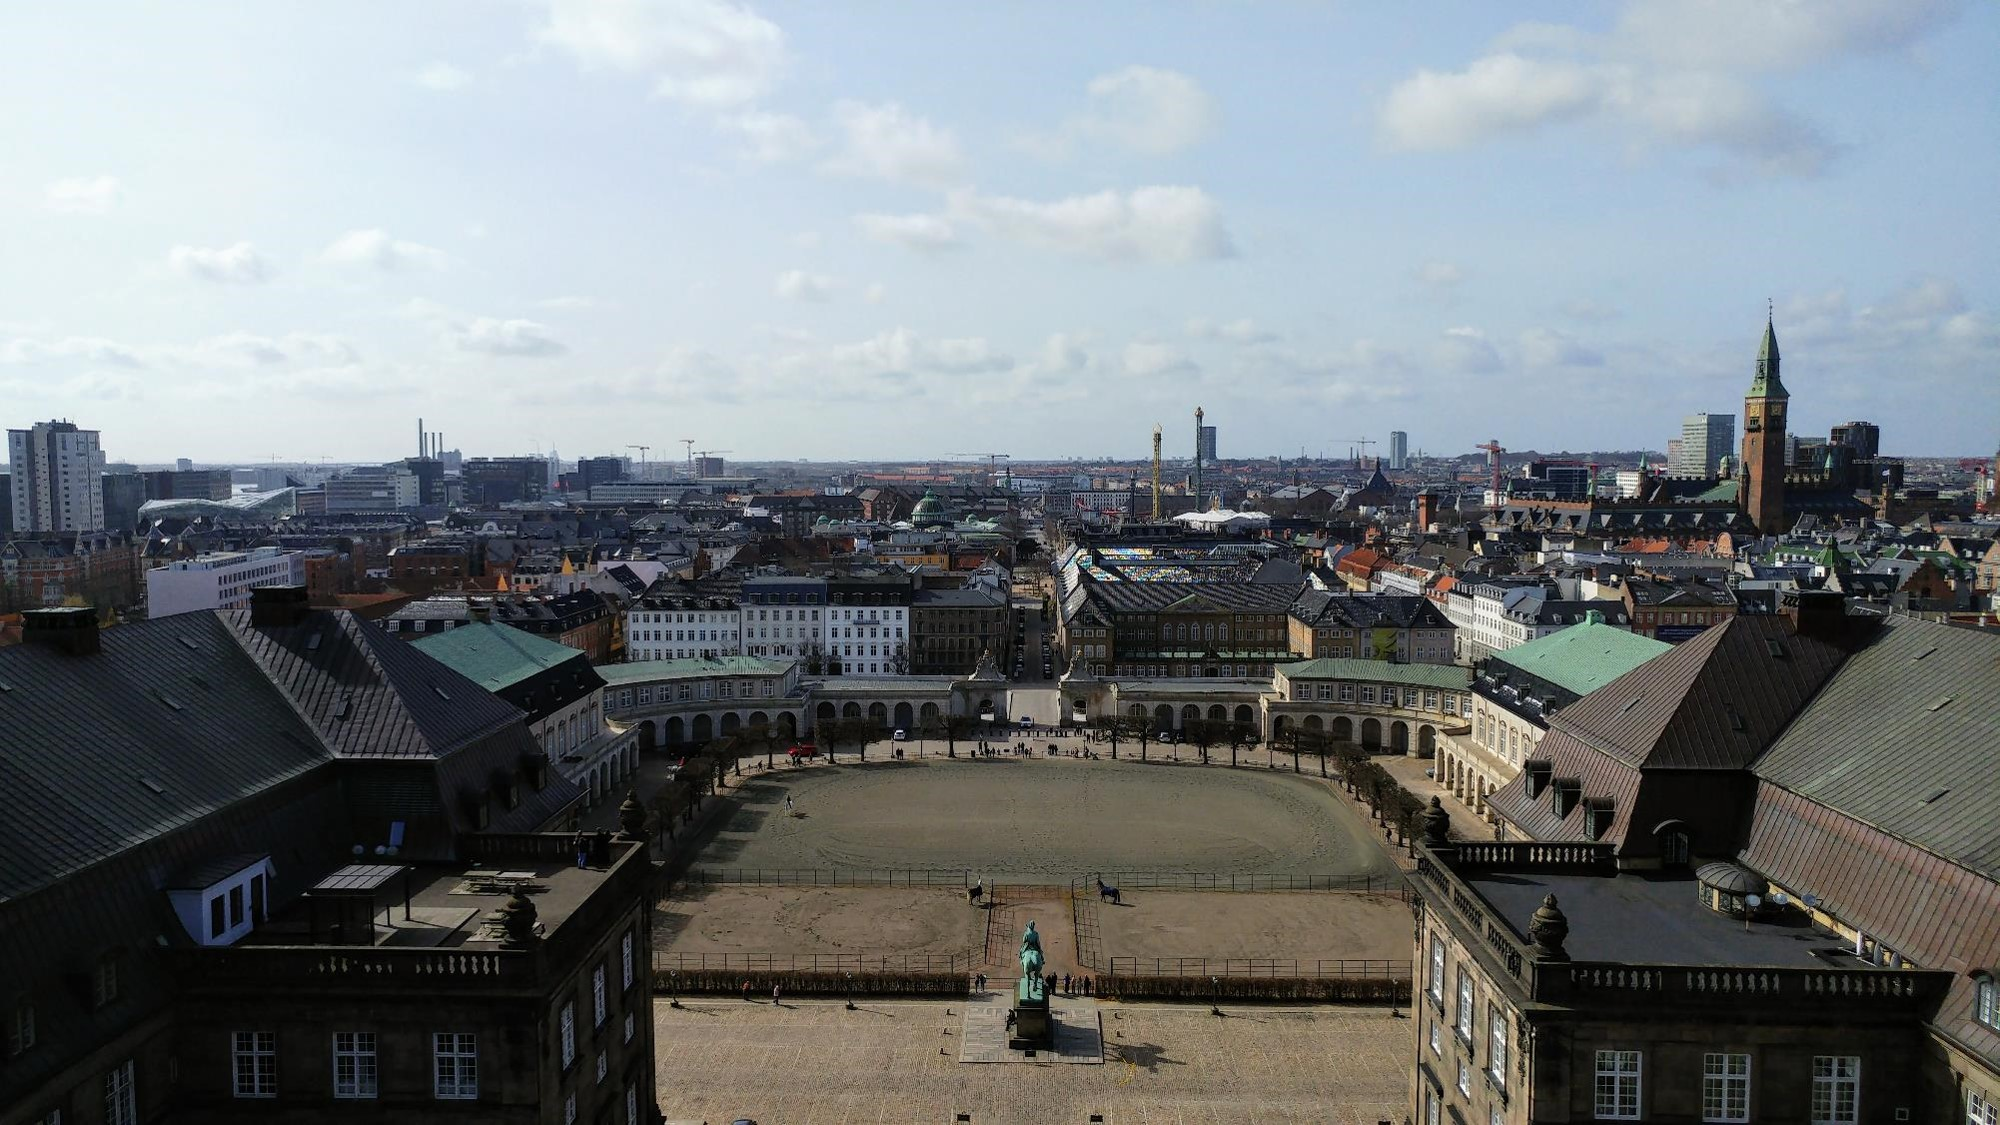 Copenhagen: View from tower of Christiansborg Palace